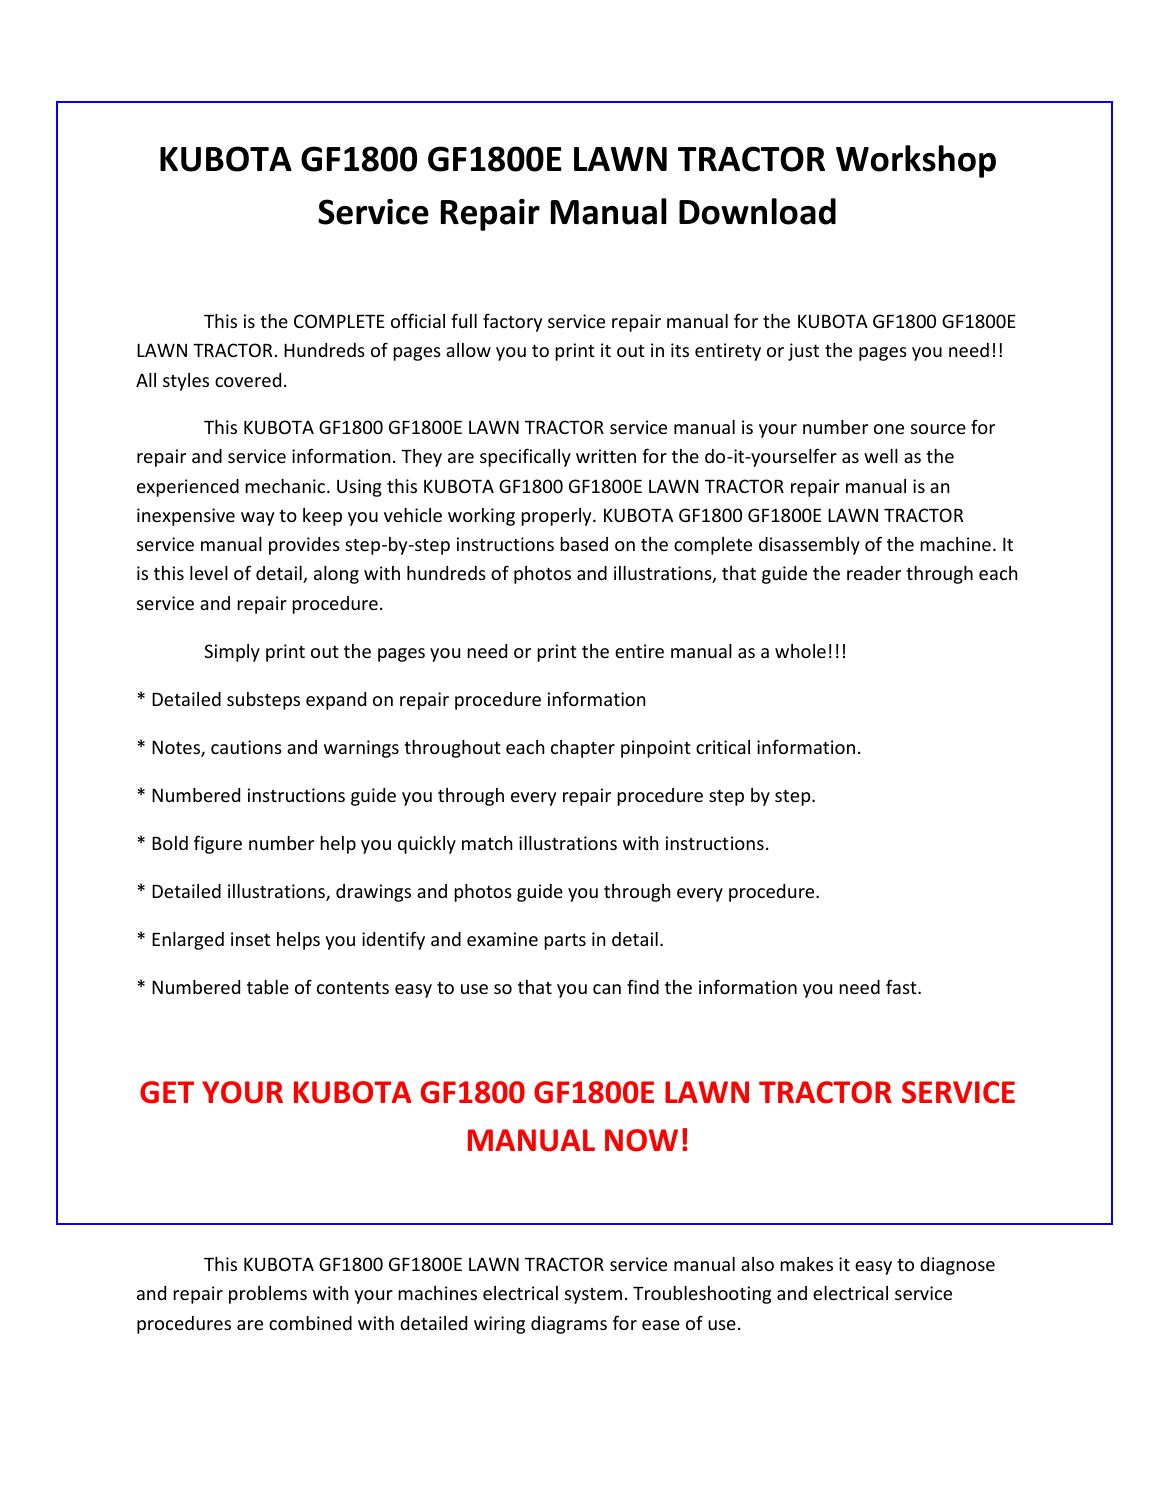 hight resolution of kubota gf1800 gf1800e lawn tractor service repair manual pdf download by sparchita3 issuu